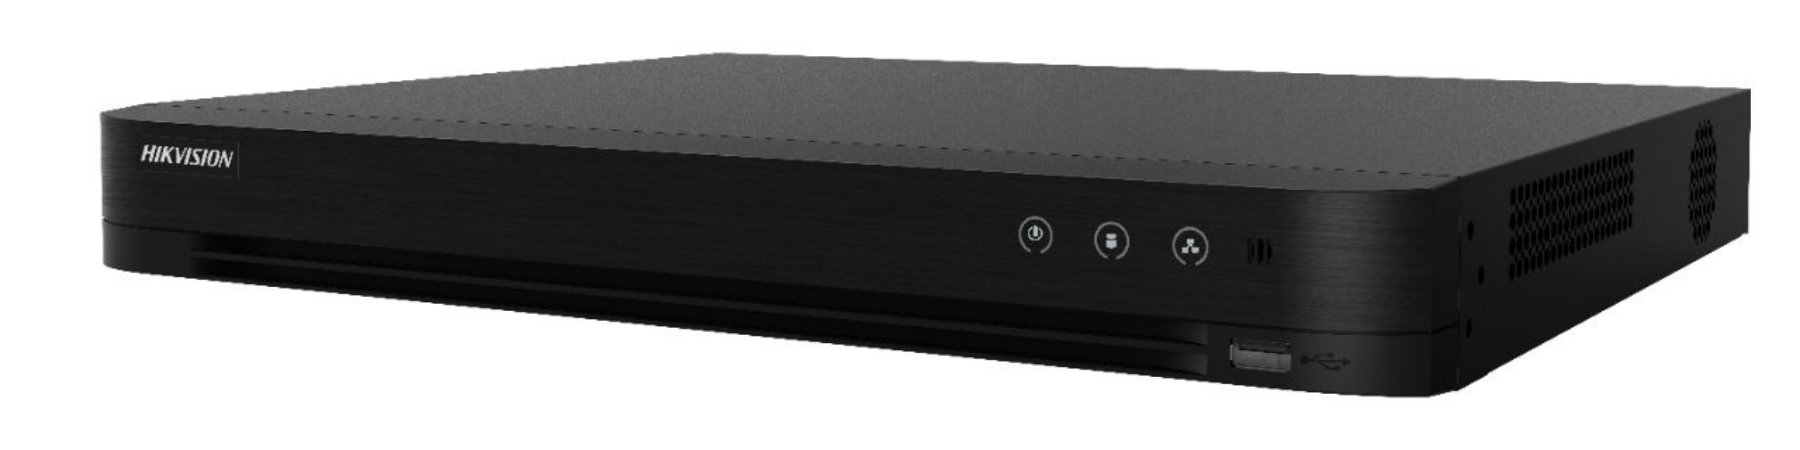 HIKVISION DVR 08CH 2HDD 1080P H.265 PRO+ IDS-7208HQHI-M2/S